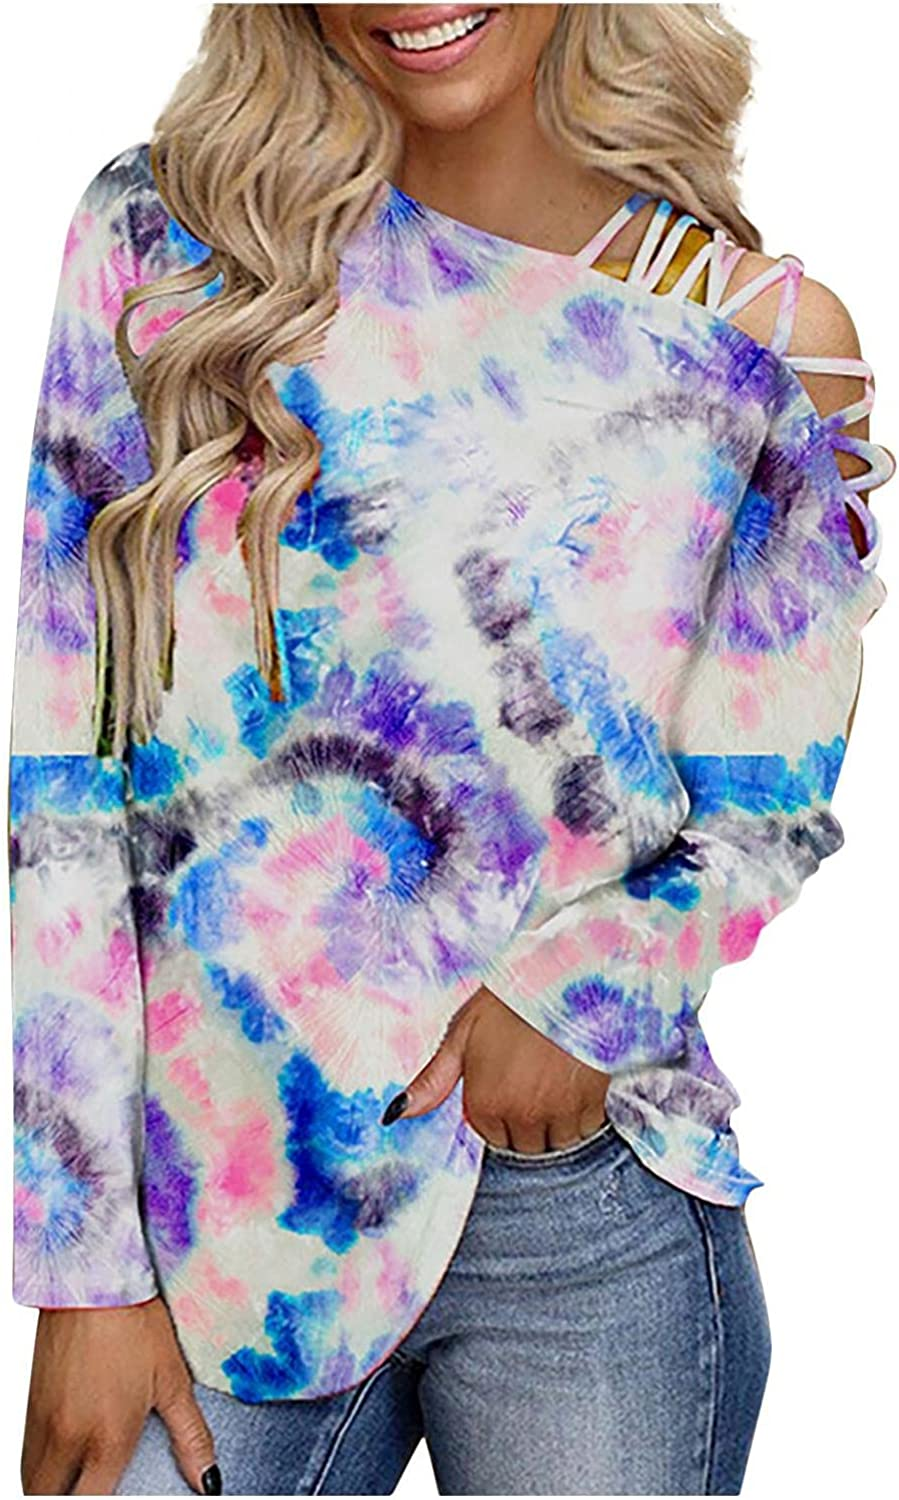 Afelkas Womens Shirts Tie-Dye Print Irregular Collar Active Blouse Trendy Shoulder Strappy Hollow Out Sexy Sweatshirt